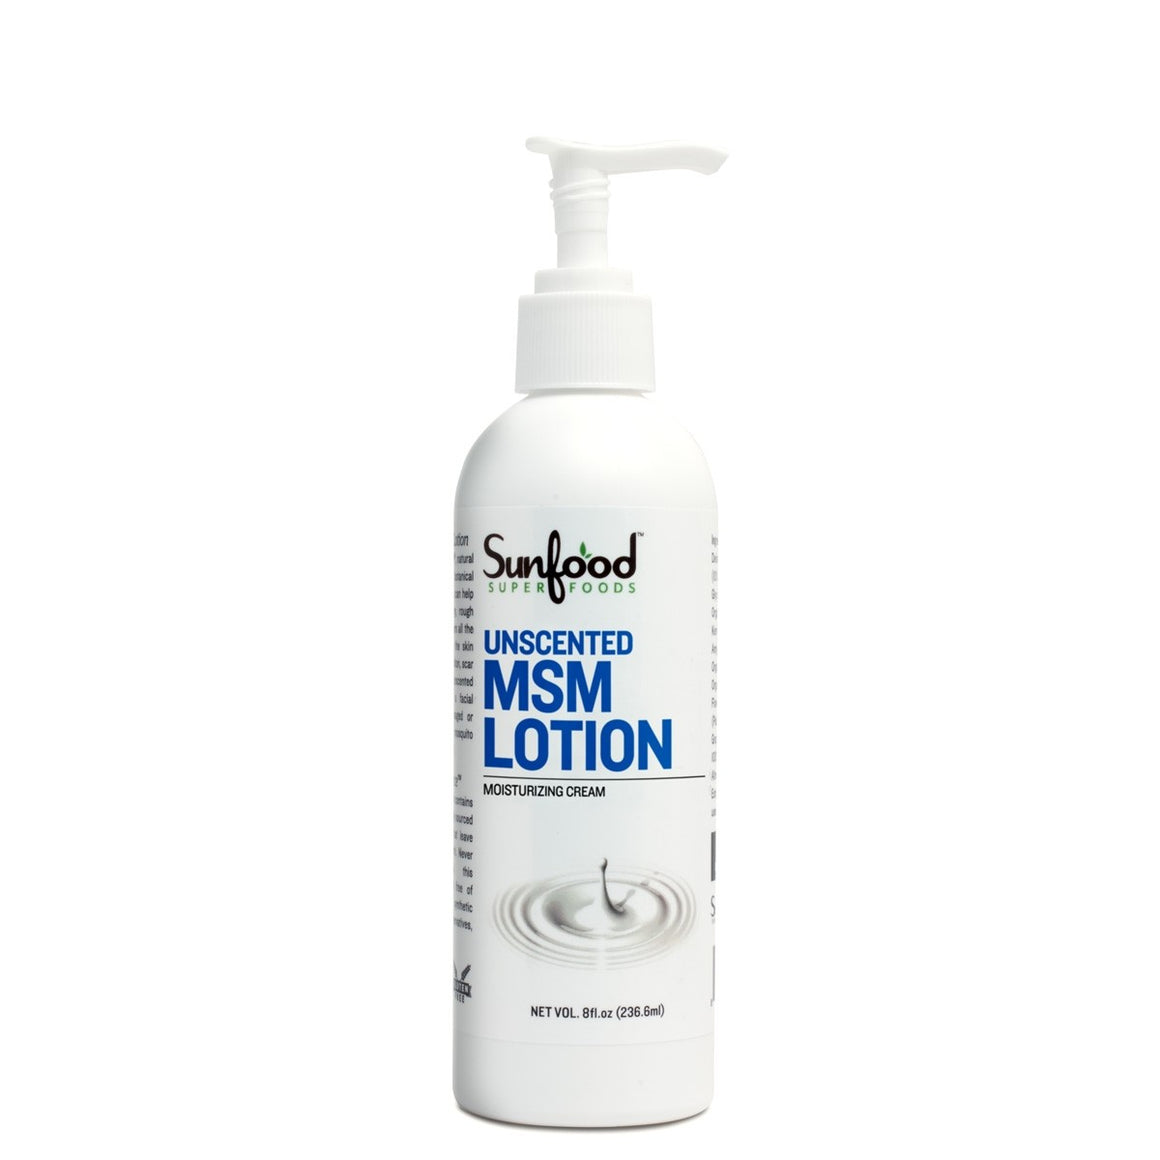 Sunfoods MSM Lotion, Unscented